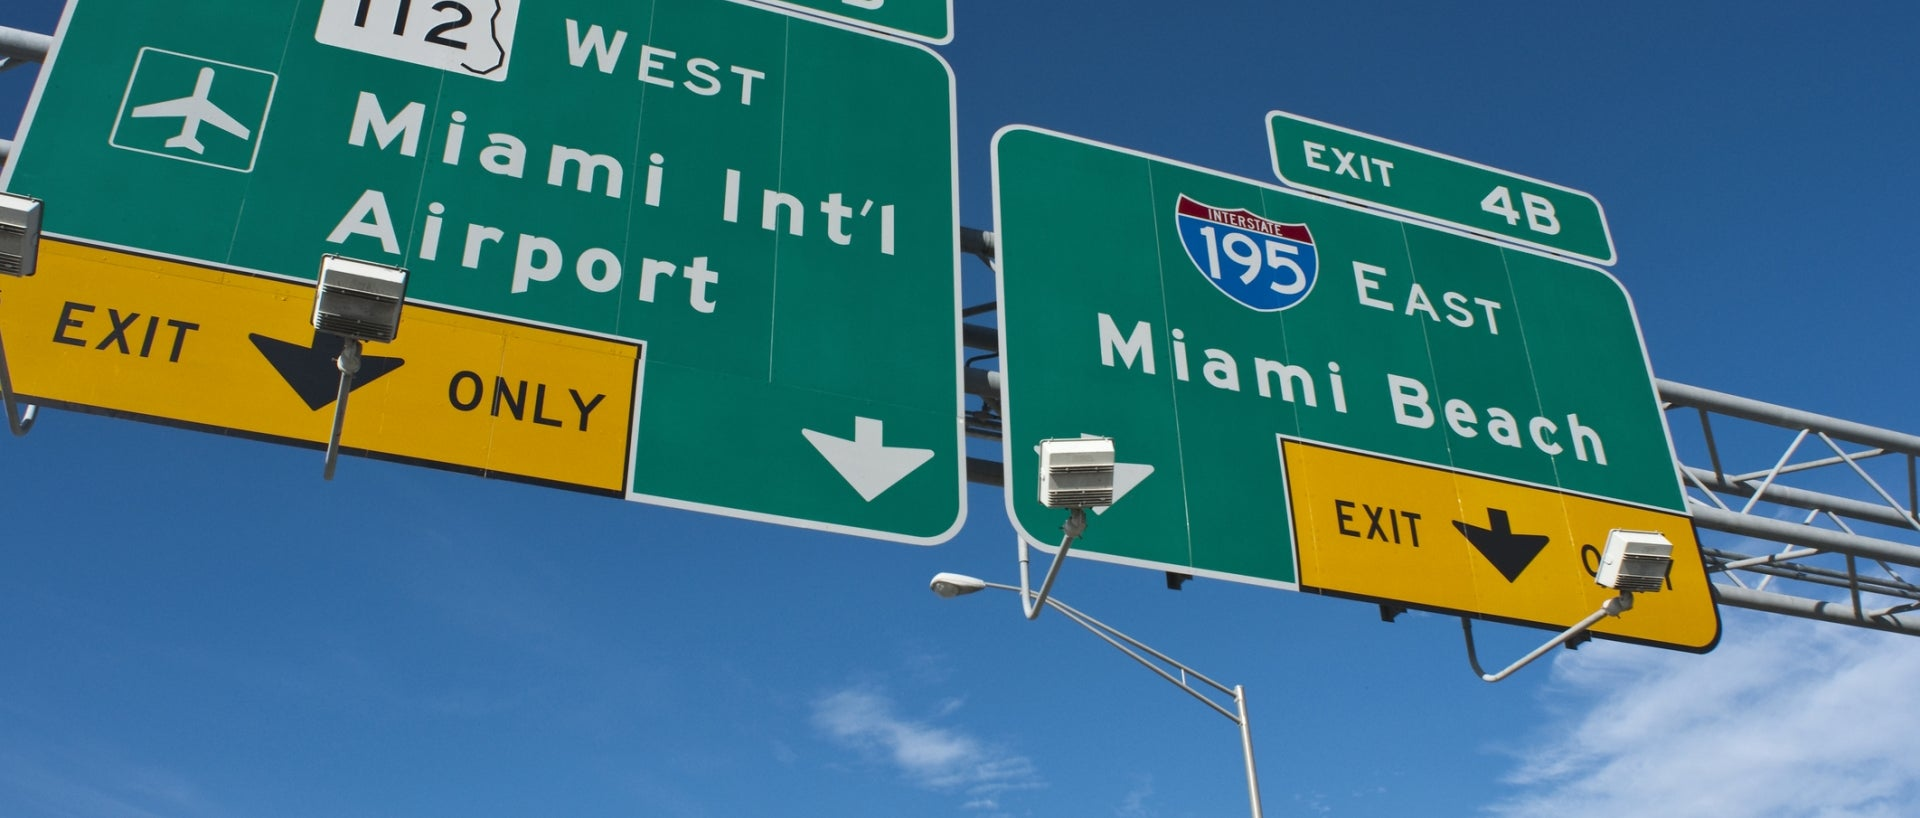 Sign showing Miami Intl Airport and Miami Beach